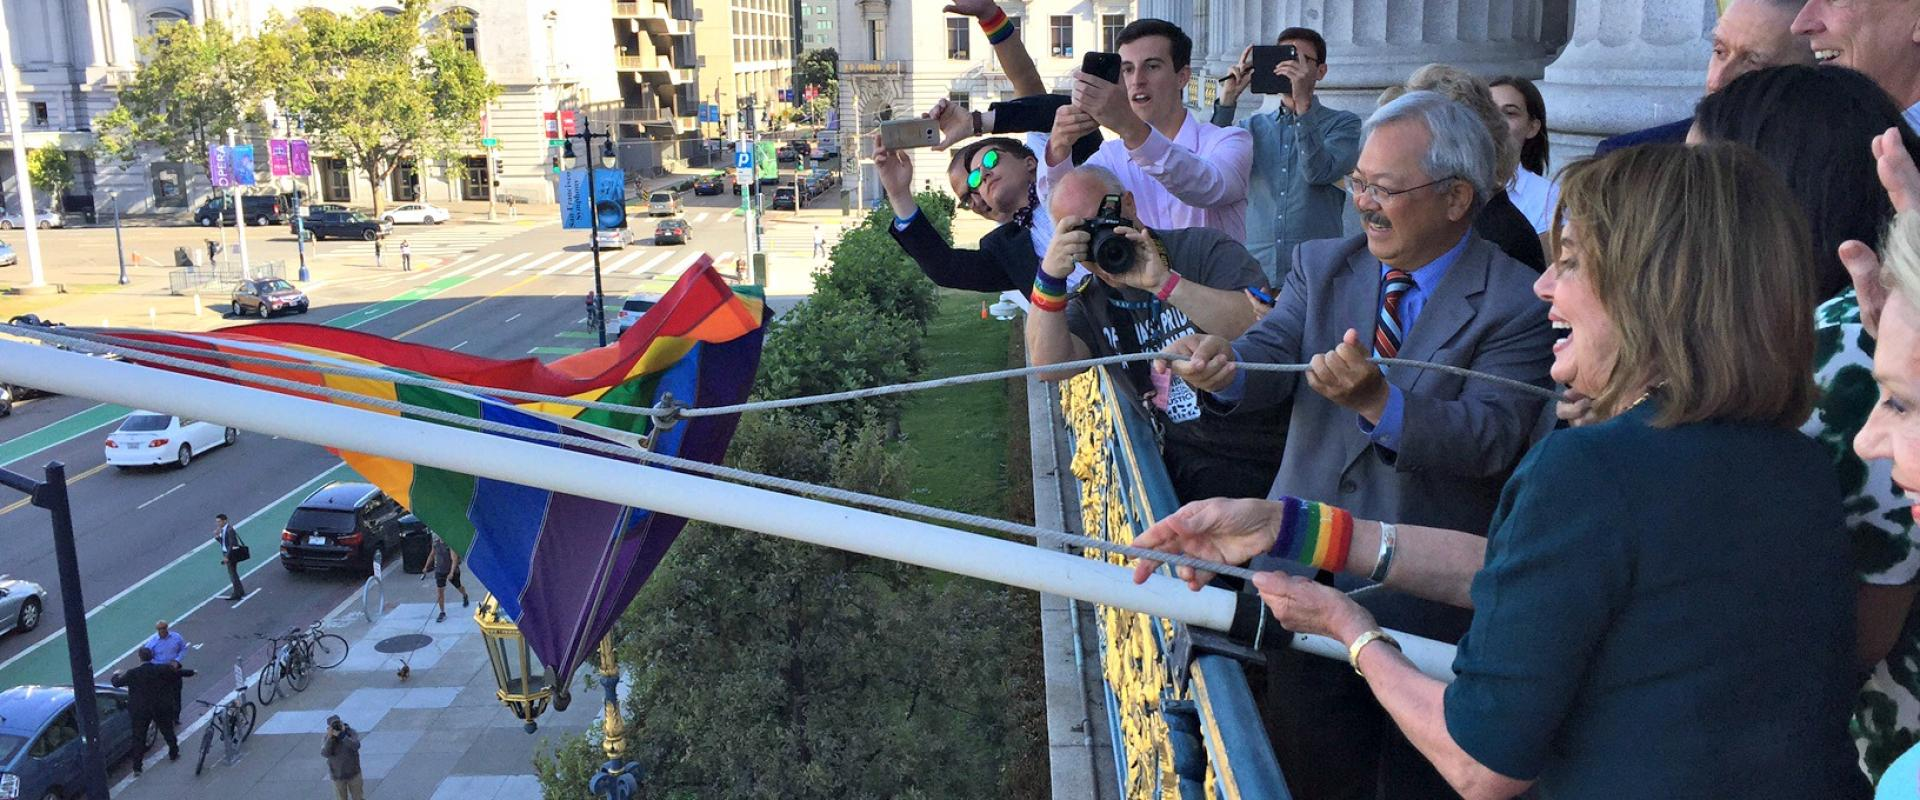 Congresswoman Pelosi and Mayor Ed Lee raise the Rainbow Flag at San Francisco City Hall in celebration of LGBTQ Pride. The ceremony honored the memory of Gilbert Baker, creator of the iconic rainbow flag which has become a symbol of the LGBTQ community re